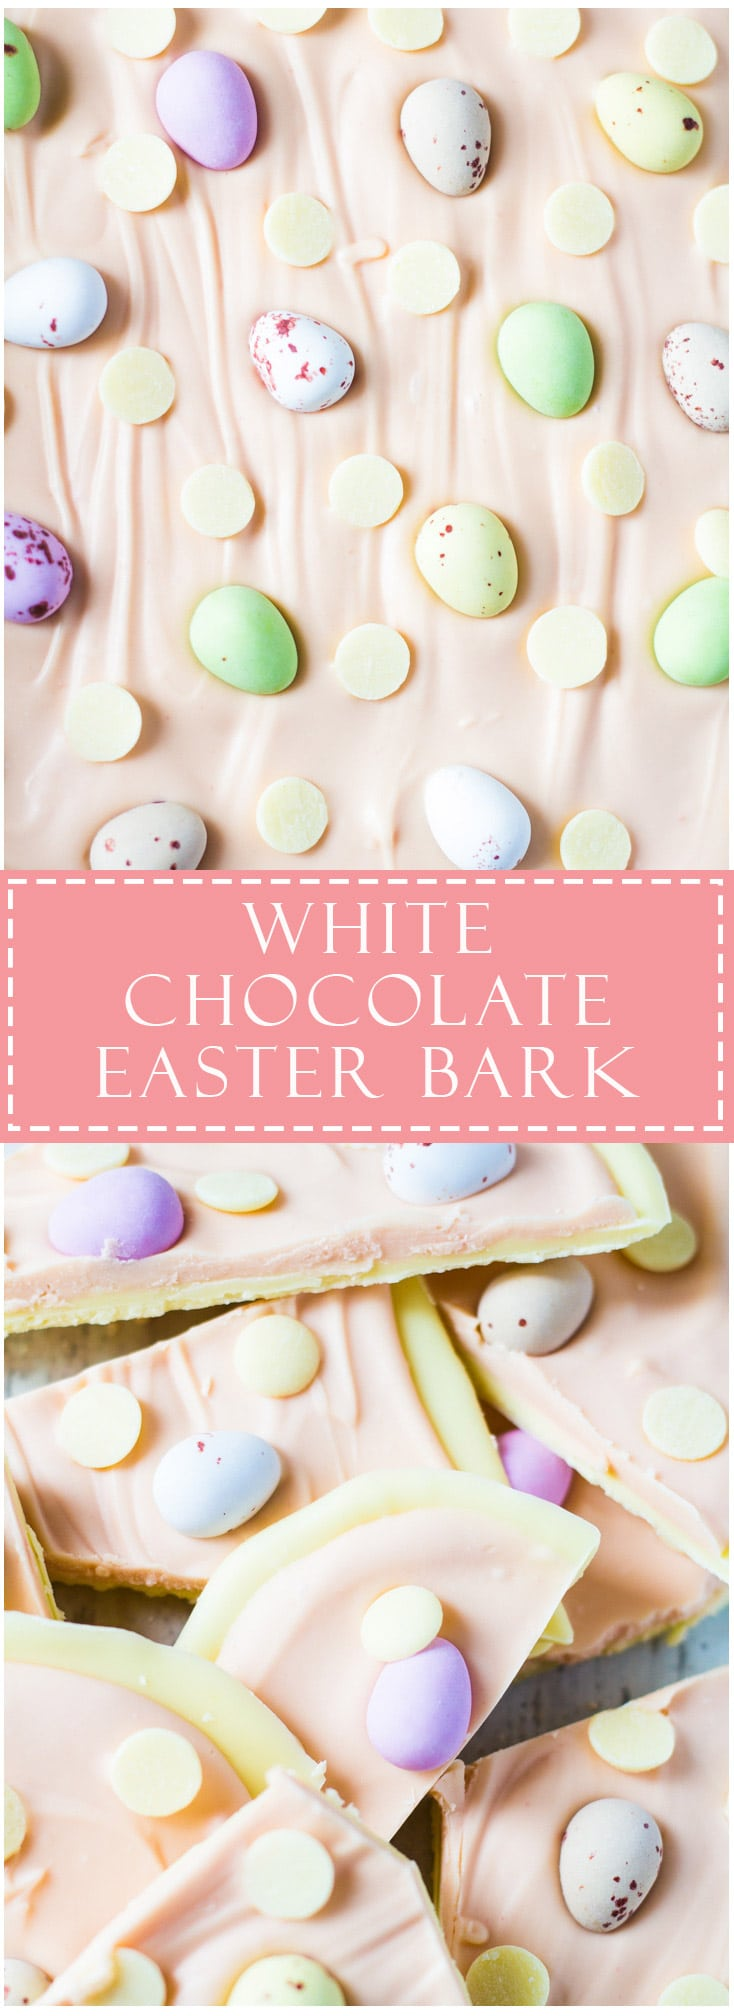 A long pin of White Chocolate Easter Bark with text overlay.